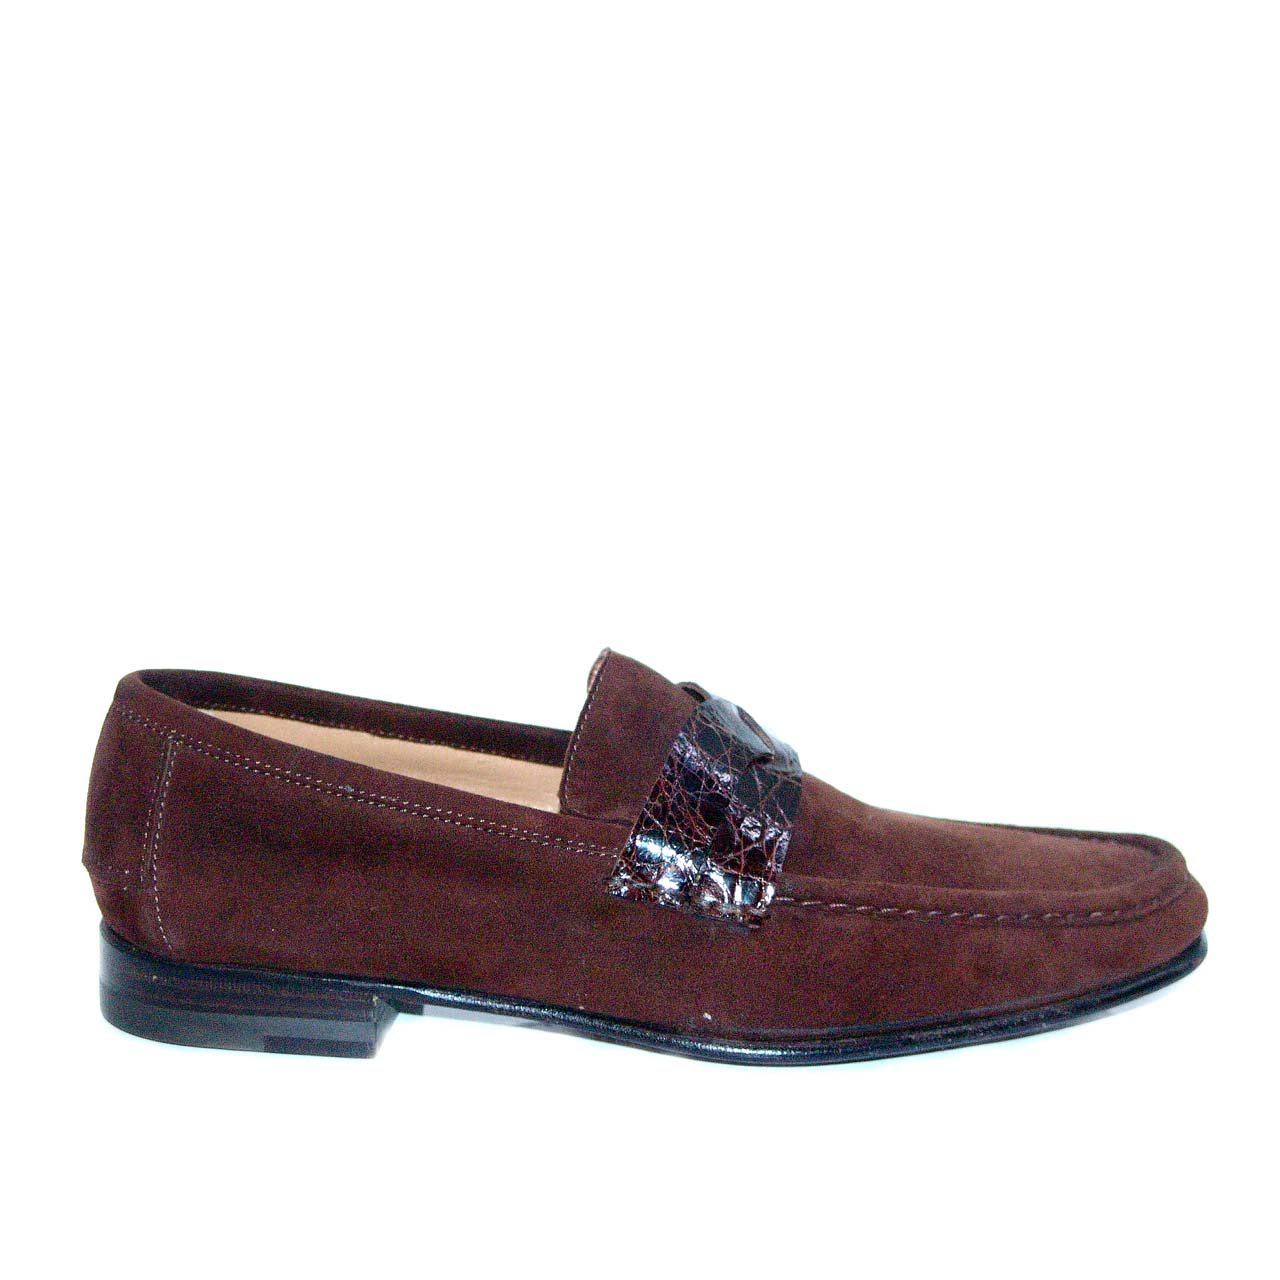 Lorenzo Banfi Suede Loafer Crocodile Vamp 671 Brown FINAL SALE